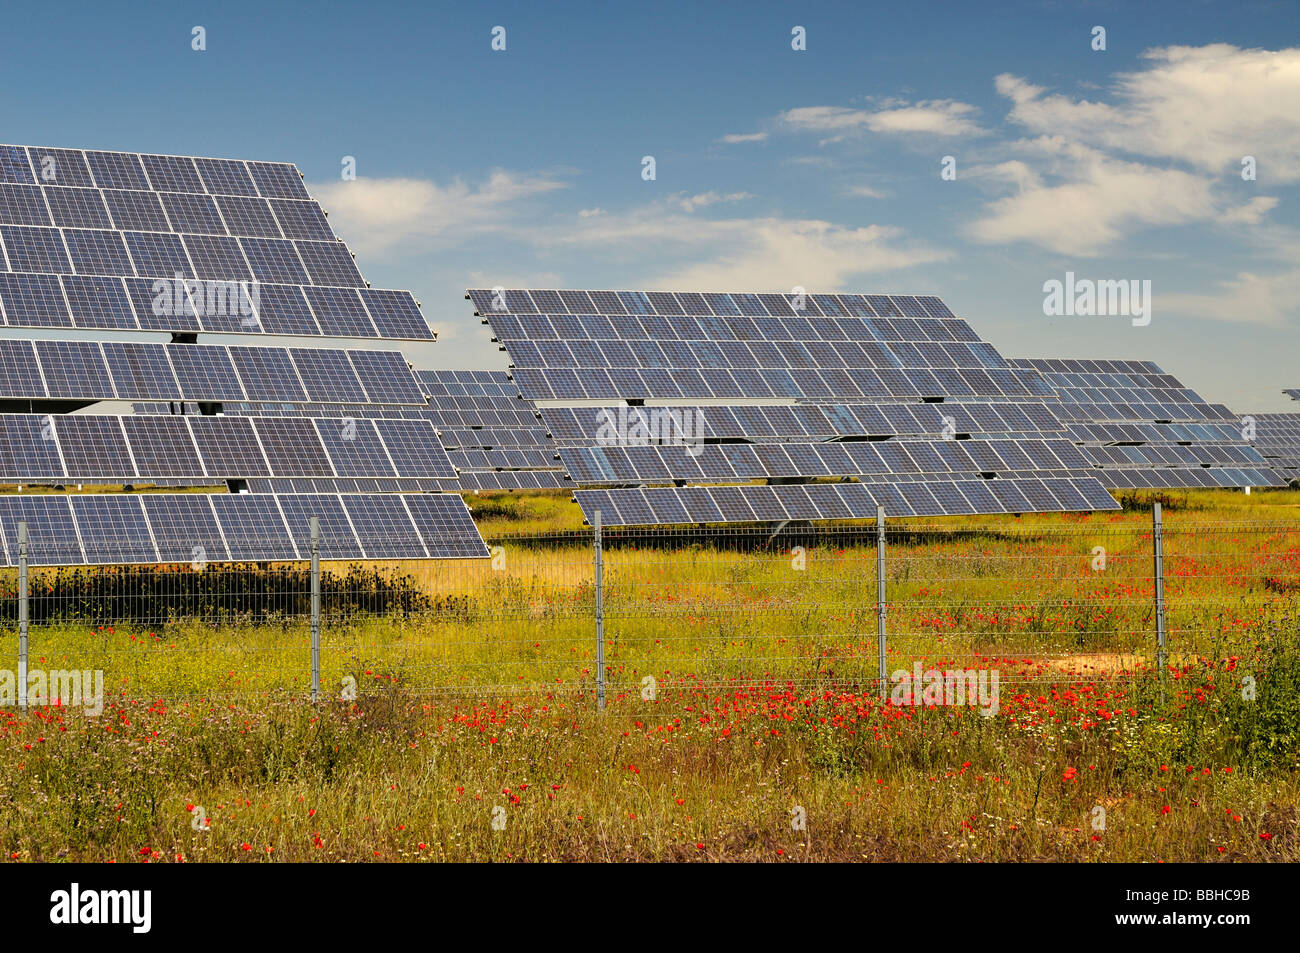 Field with red poppies and many arrays of solar panels for electricity production - Stock Image